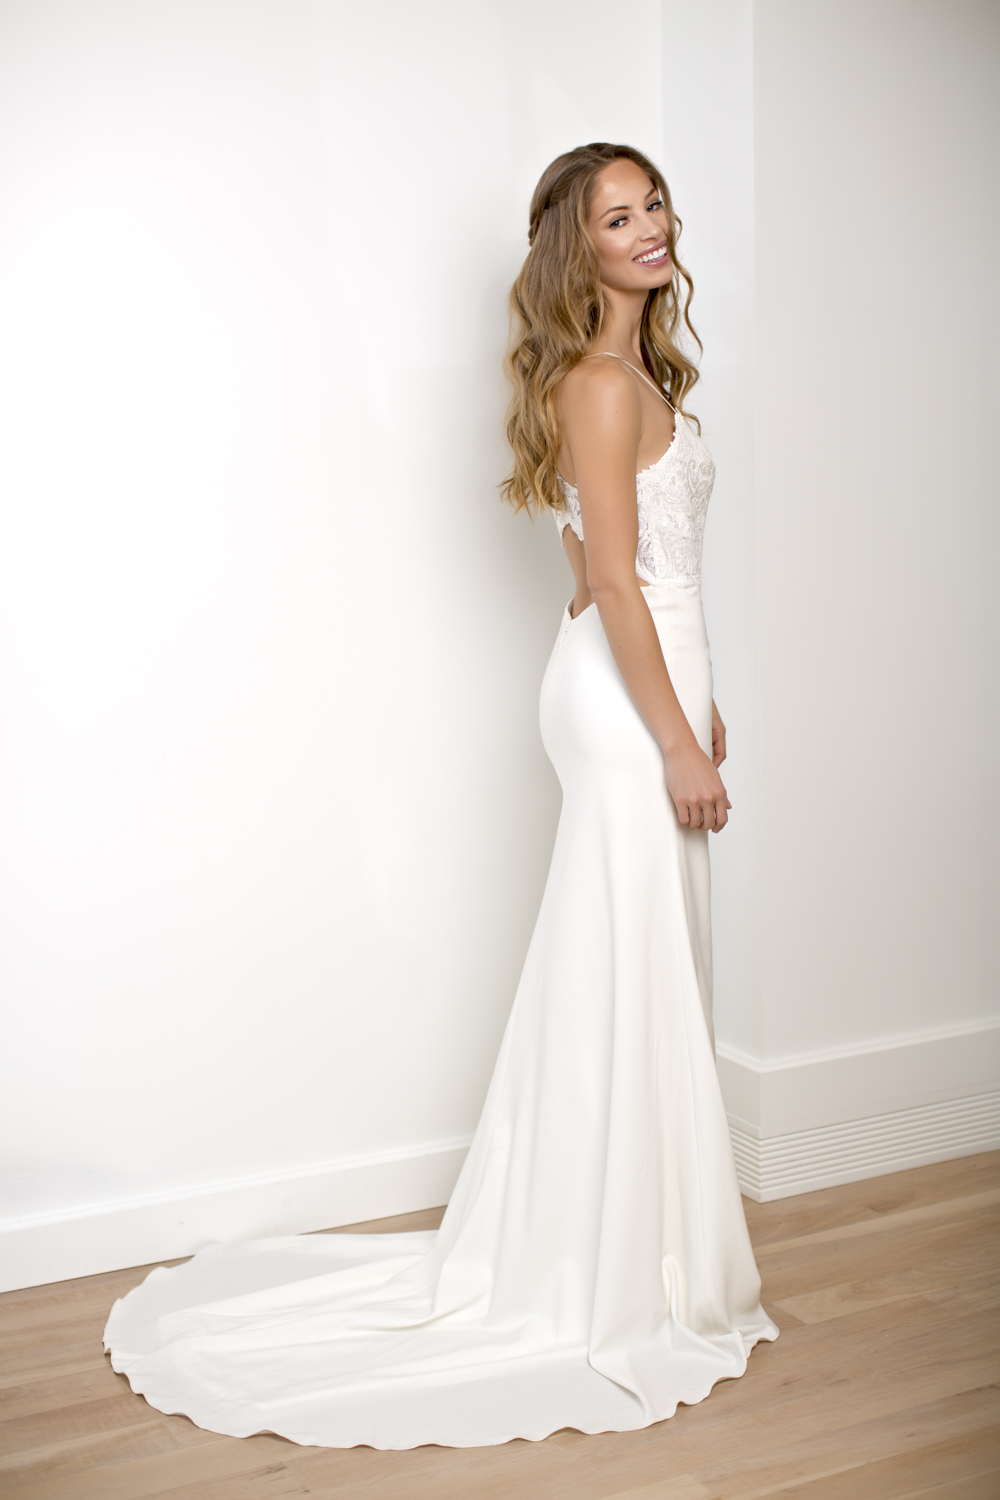 carrietyler_fashionbridal_sidneykraemer_low-15.jpg